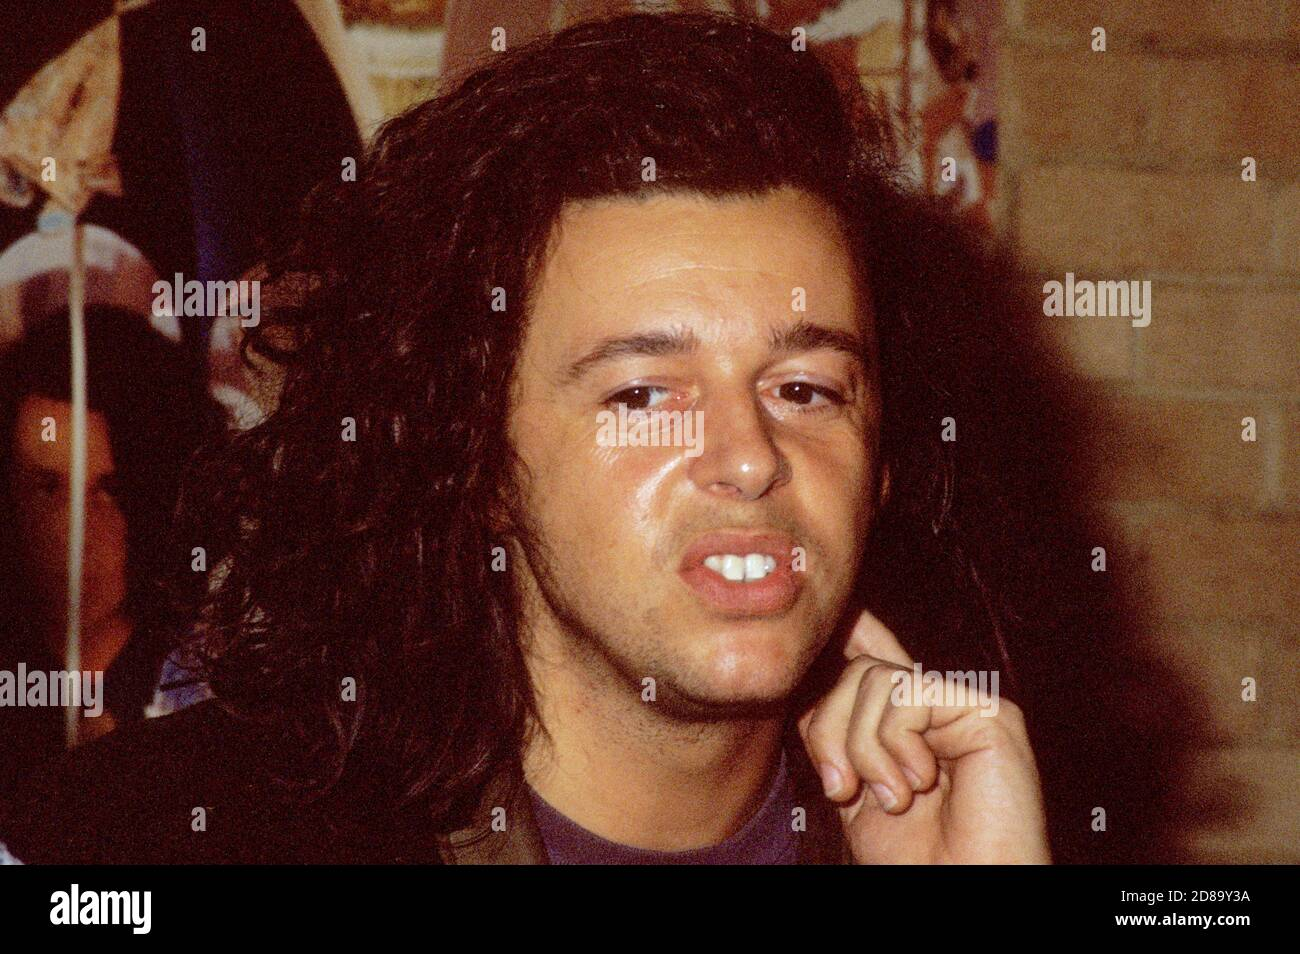 Orzabal roland Who is